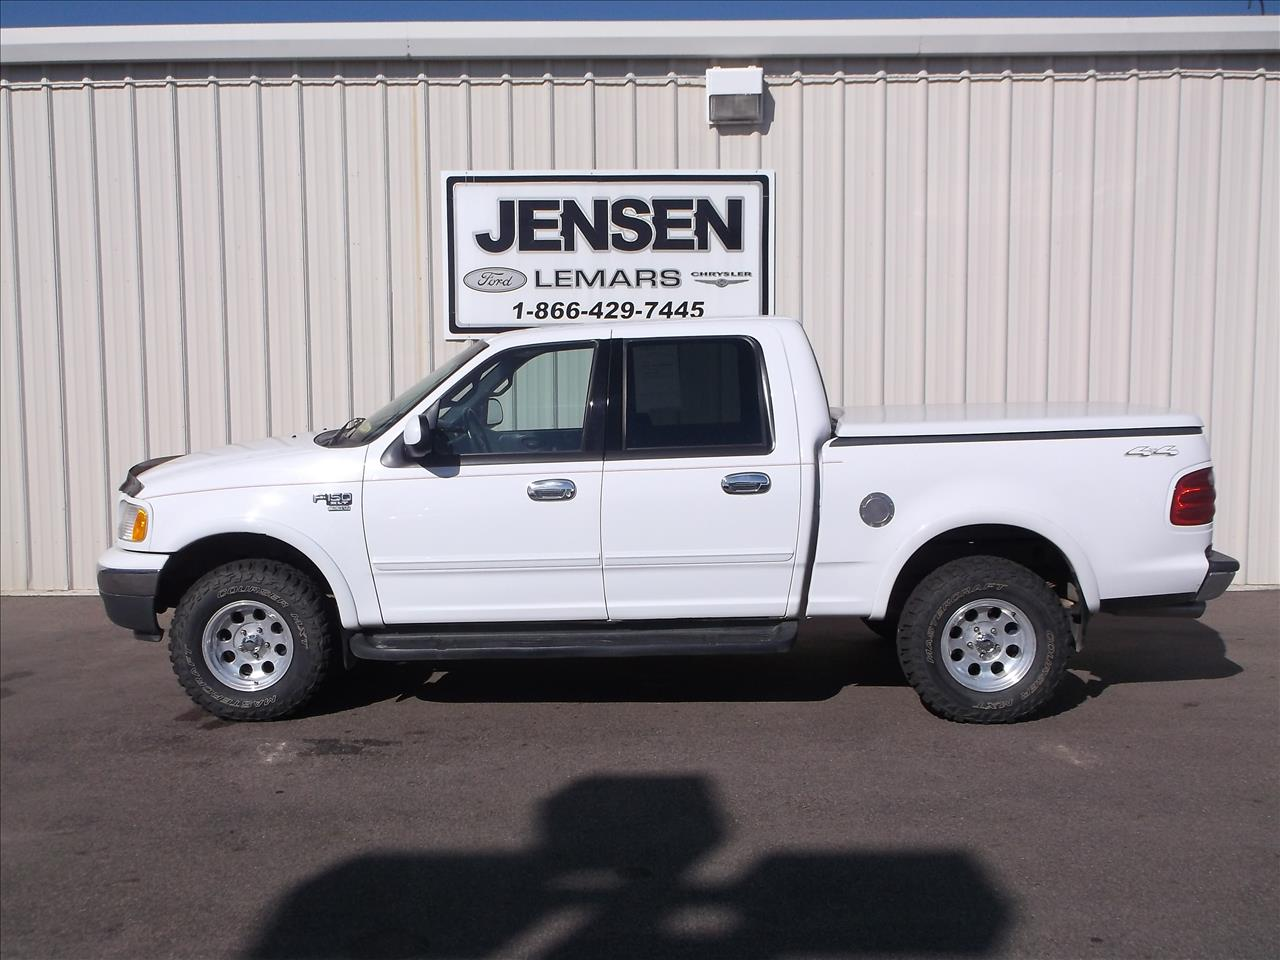 2001 ford f 150 4dr supercrew xlt 4wd styleside sb in le for Jensen motors sioux city